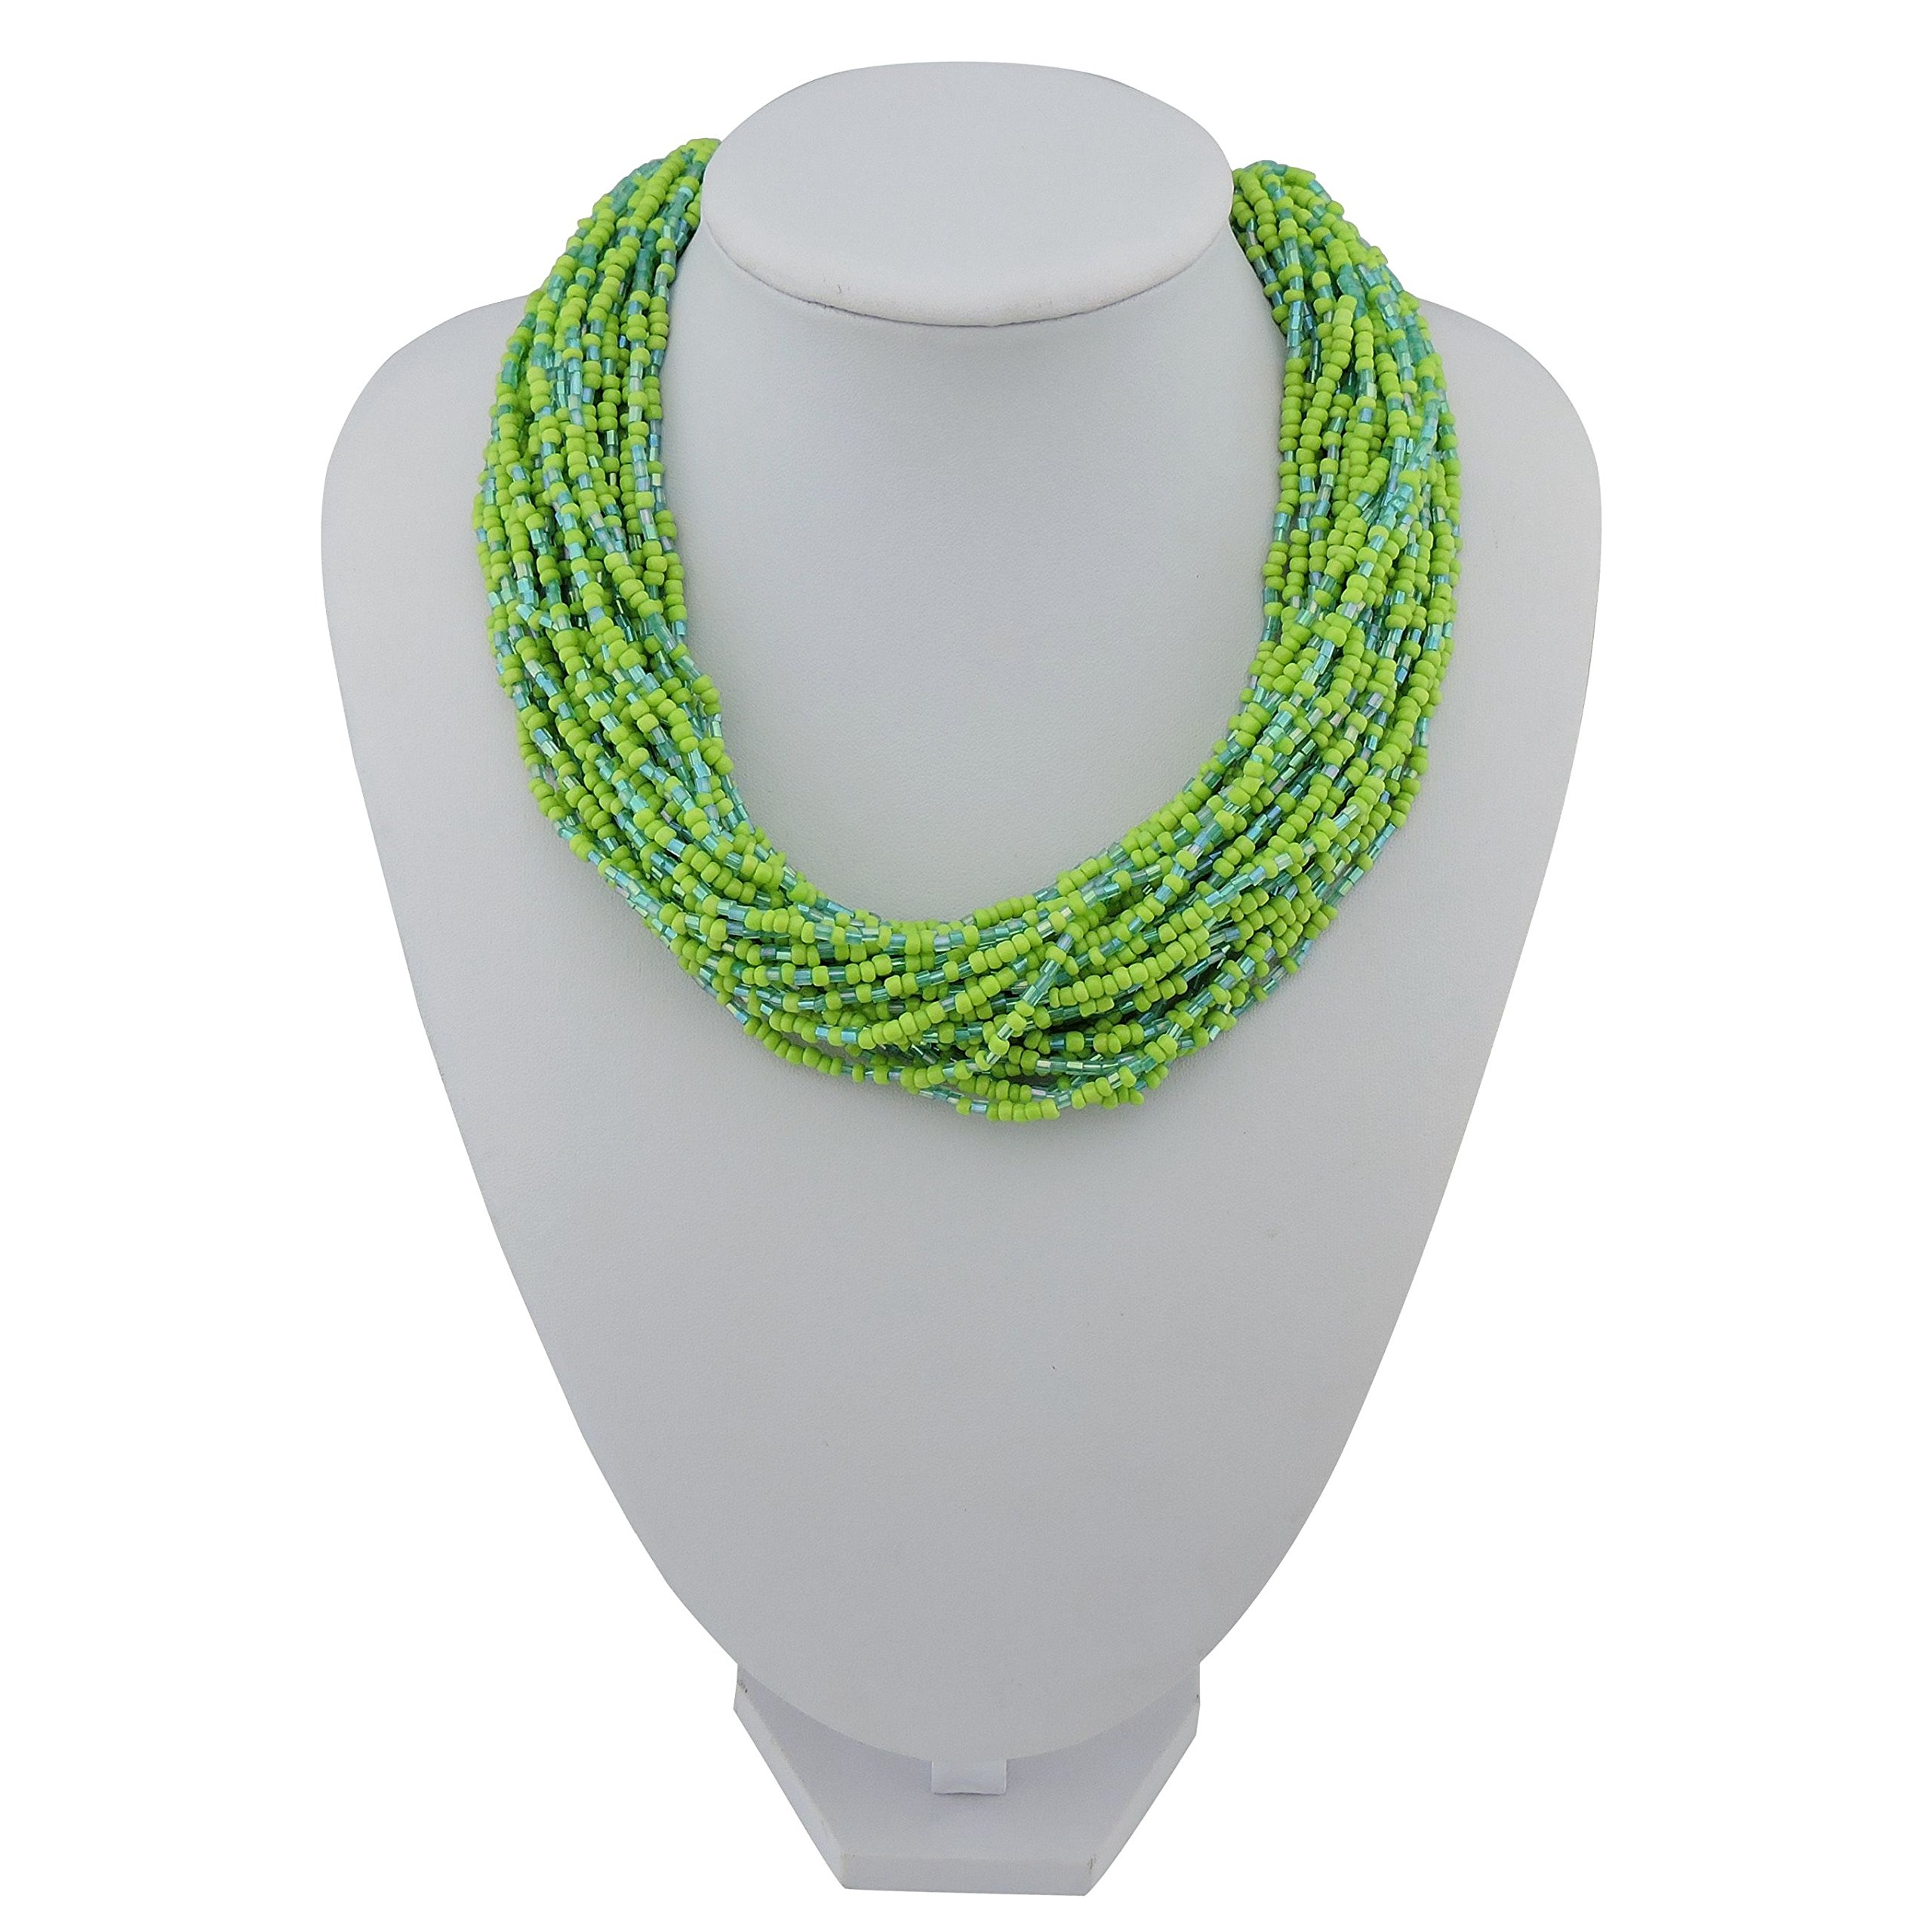 Bocar Multiple Strand Handmade Beaded 16'' Statement Collar Necklace for Women with Gift Box (NK-10402-greenery)